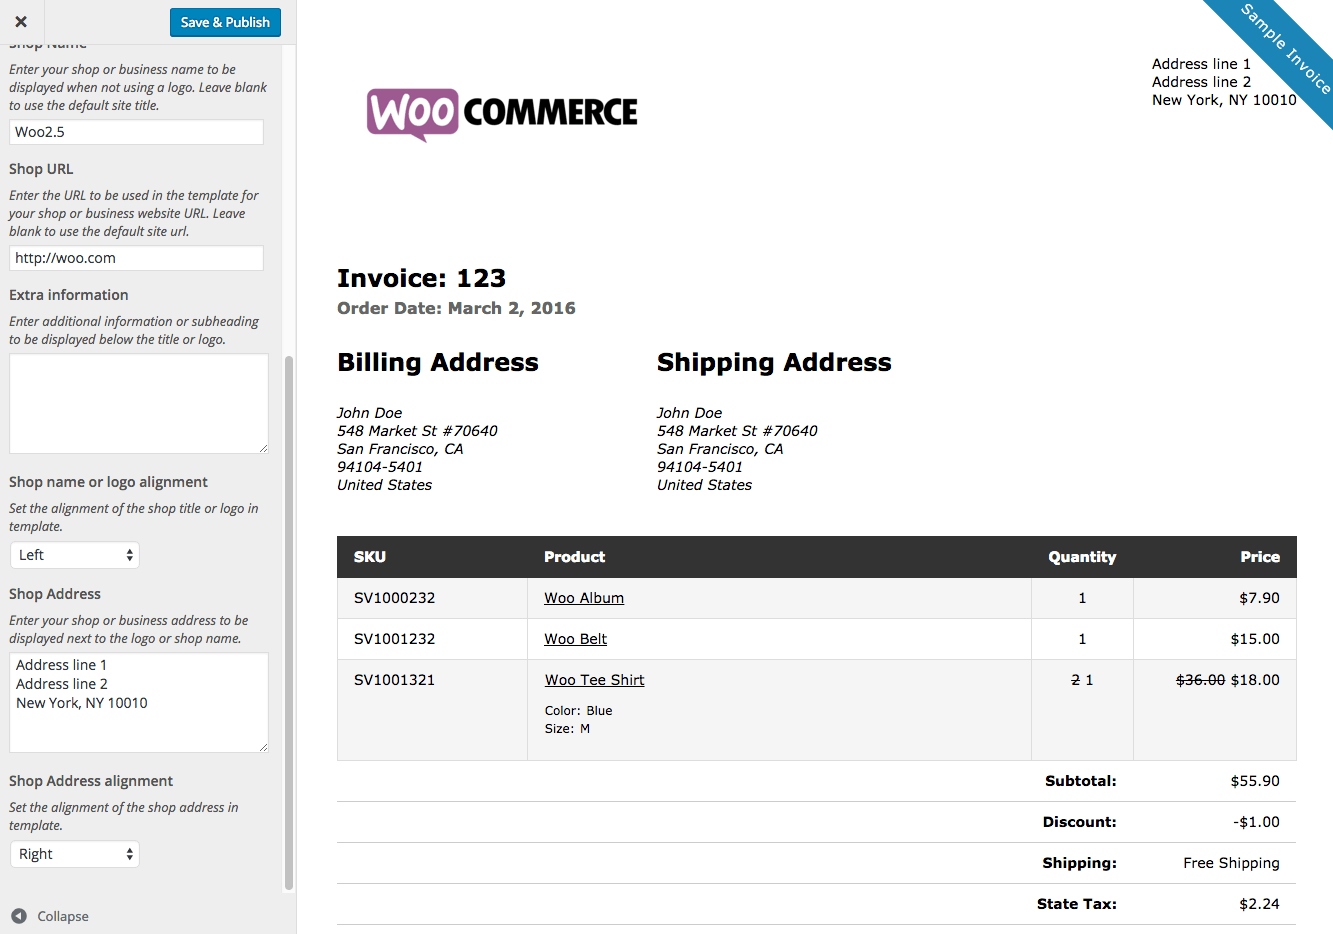 Ediblewildsus  Winning Print Invoices Amp Packing Lists  Woocommerce With Gorgeous Woocommerce Print Invoices  Packing Lists Customizer With Beautiful Neat Receipts Software Also Thermal Receipt Printer In Addition Hb Receipt Number Tracking And Grocery Receipt App As Well As Menards Receipt Additionally Business Tax Receipt From Woocommercecom With Ediblewildsus  Gorgeous Print Invoices Amp Packing Lists  Woocommerce With Beautiful Woocommerce Print Invoices  Packing Lists Customizer And Winning Neat Receipts Software Also Thermal Receipt Printer In Addition Hb Receipt Number Tracking From Woocommercecom